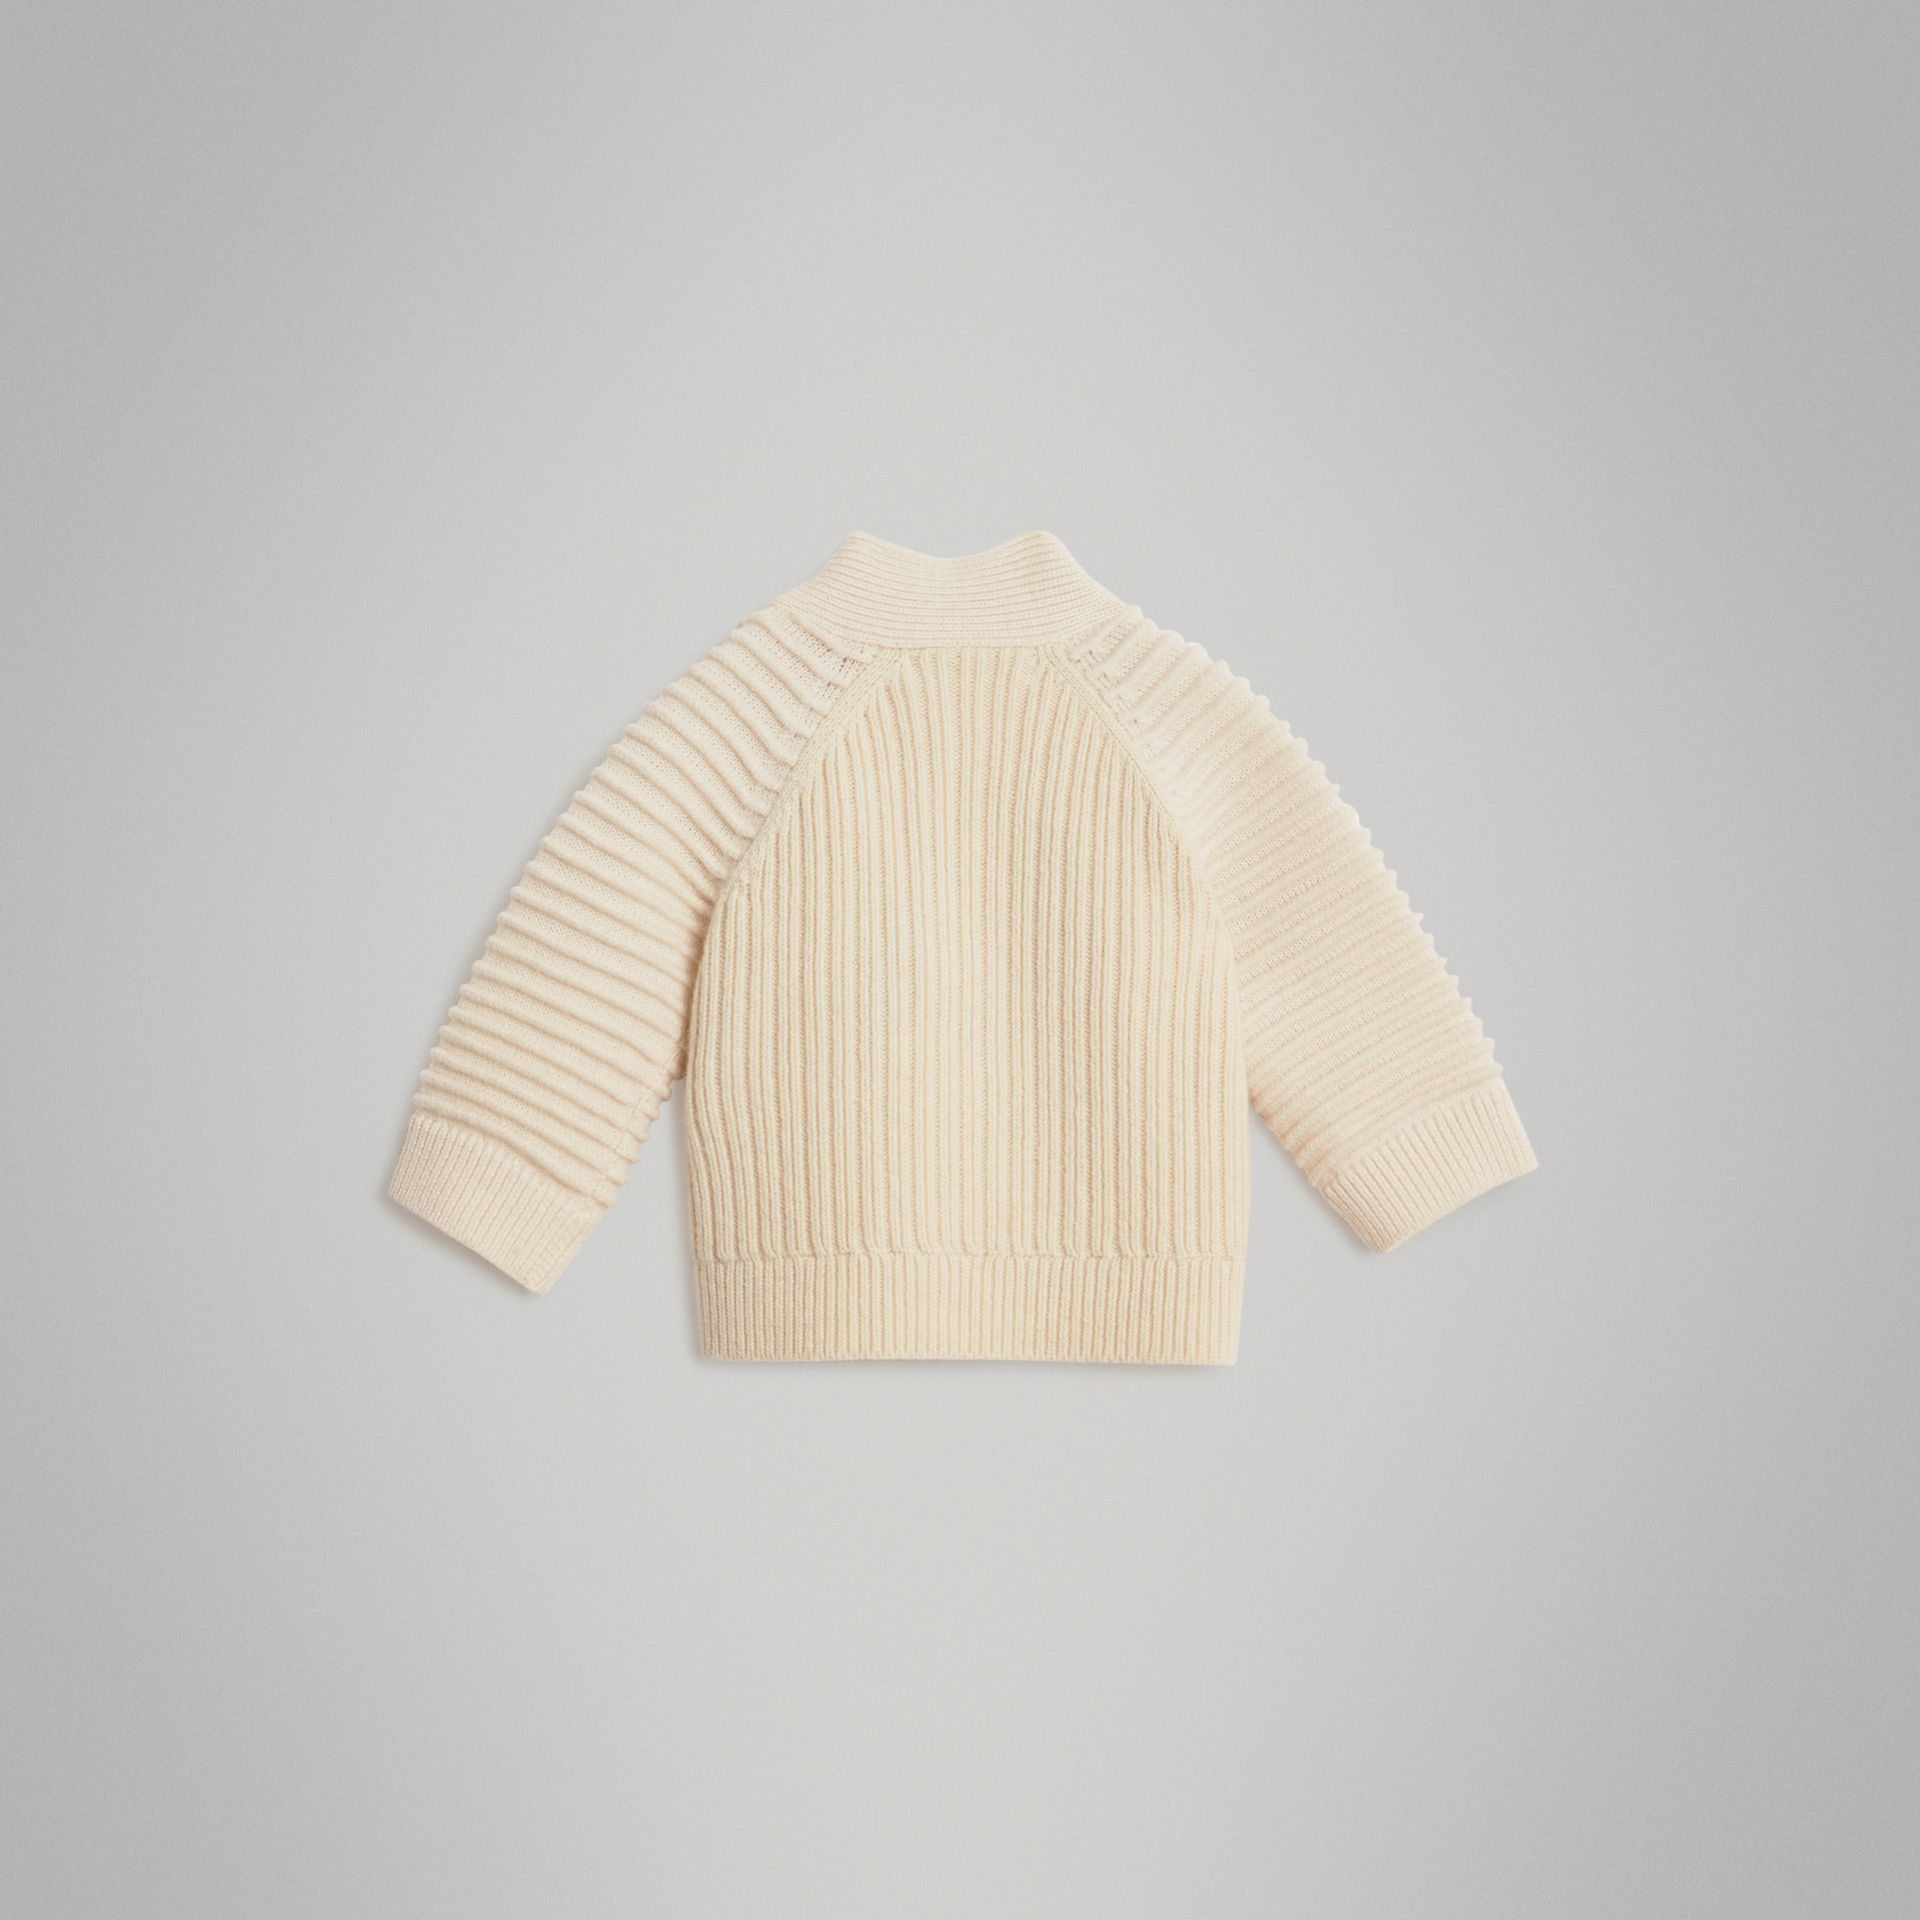 Rib Knit Wool Cashmere Cardigan in Ivory - Children | Burberry - gallery image 3